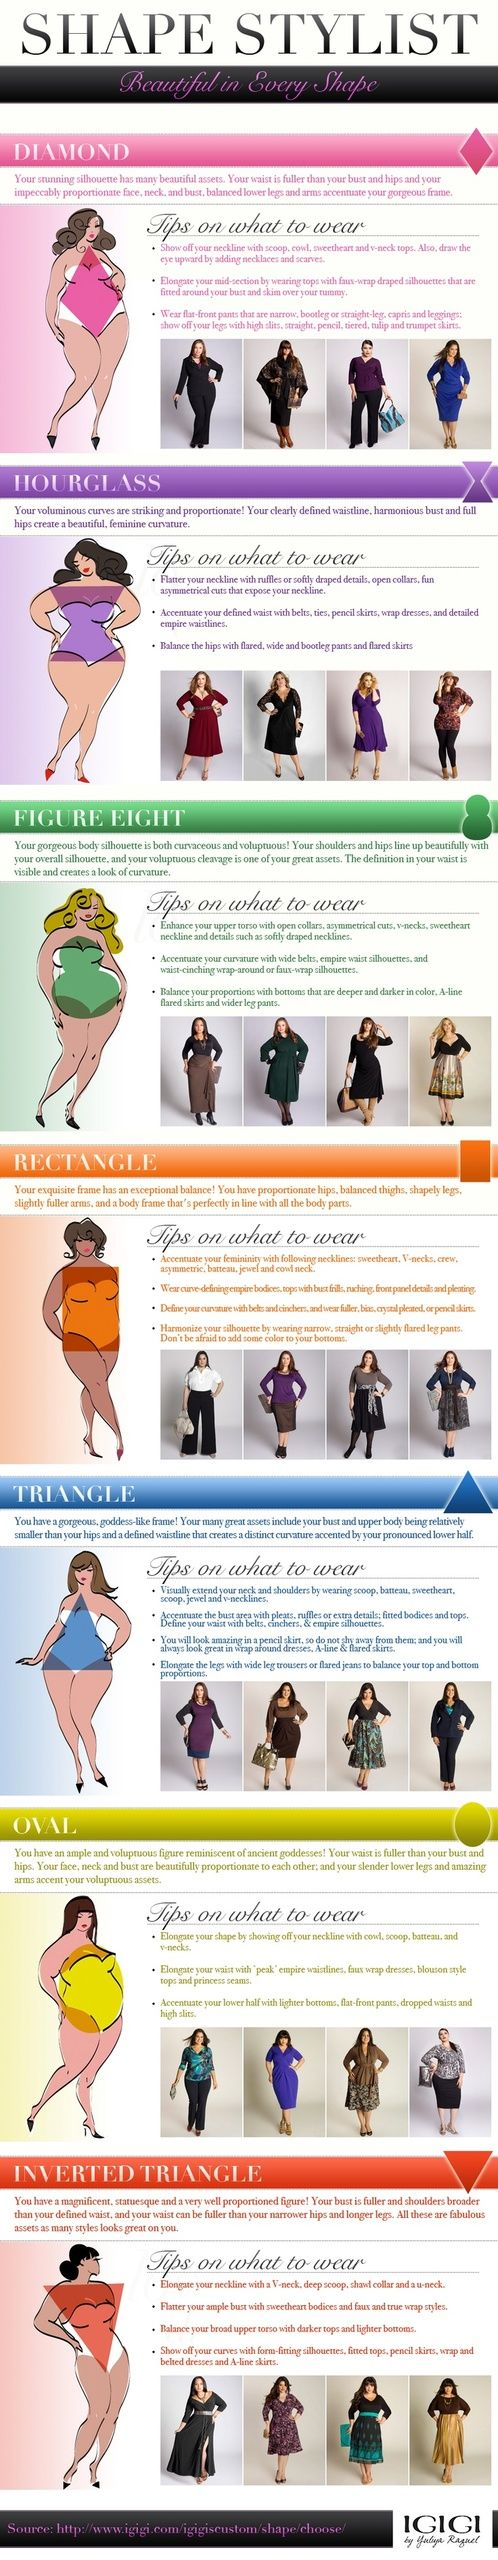 Plus Size Fashion Tips: Dressing for Your Shape as a Plus Size Woman http://thecurvyfashionista.com/2014/03/plus-size-fashion-tips-dressing-shape-plus-size-woman/